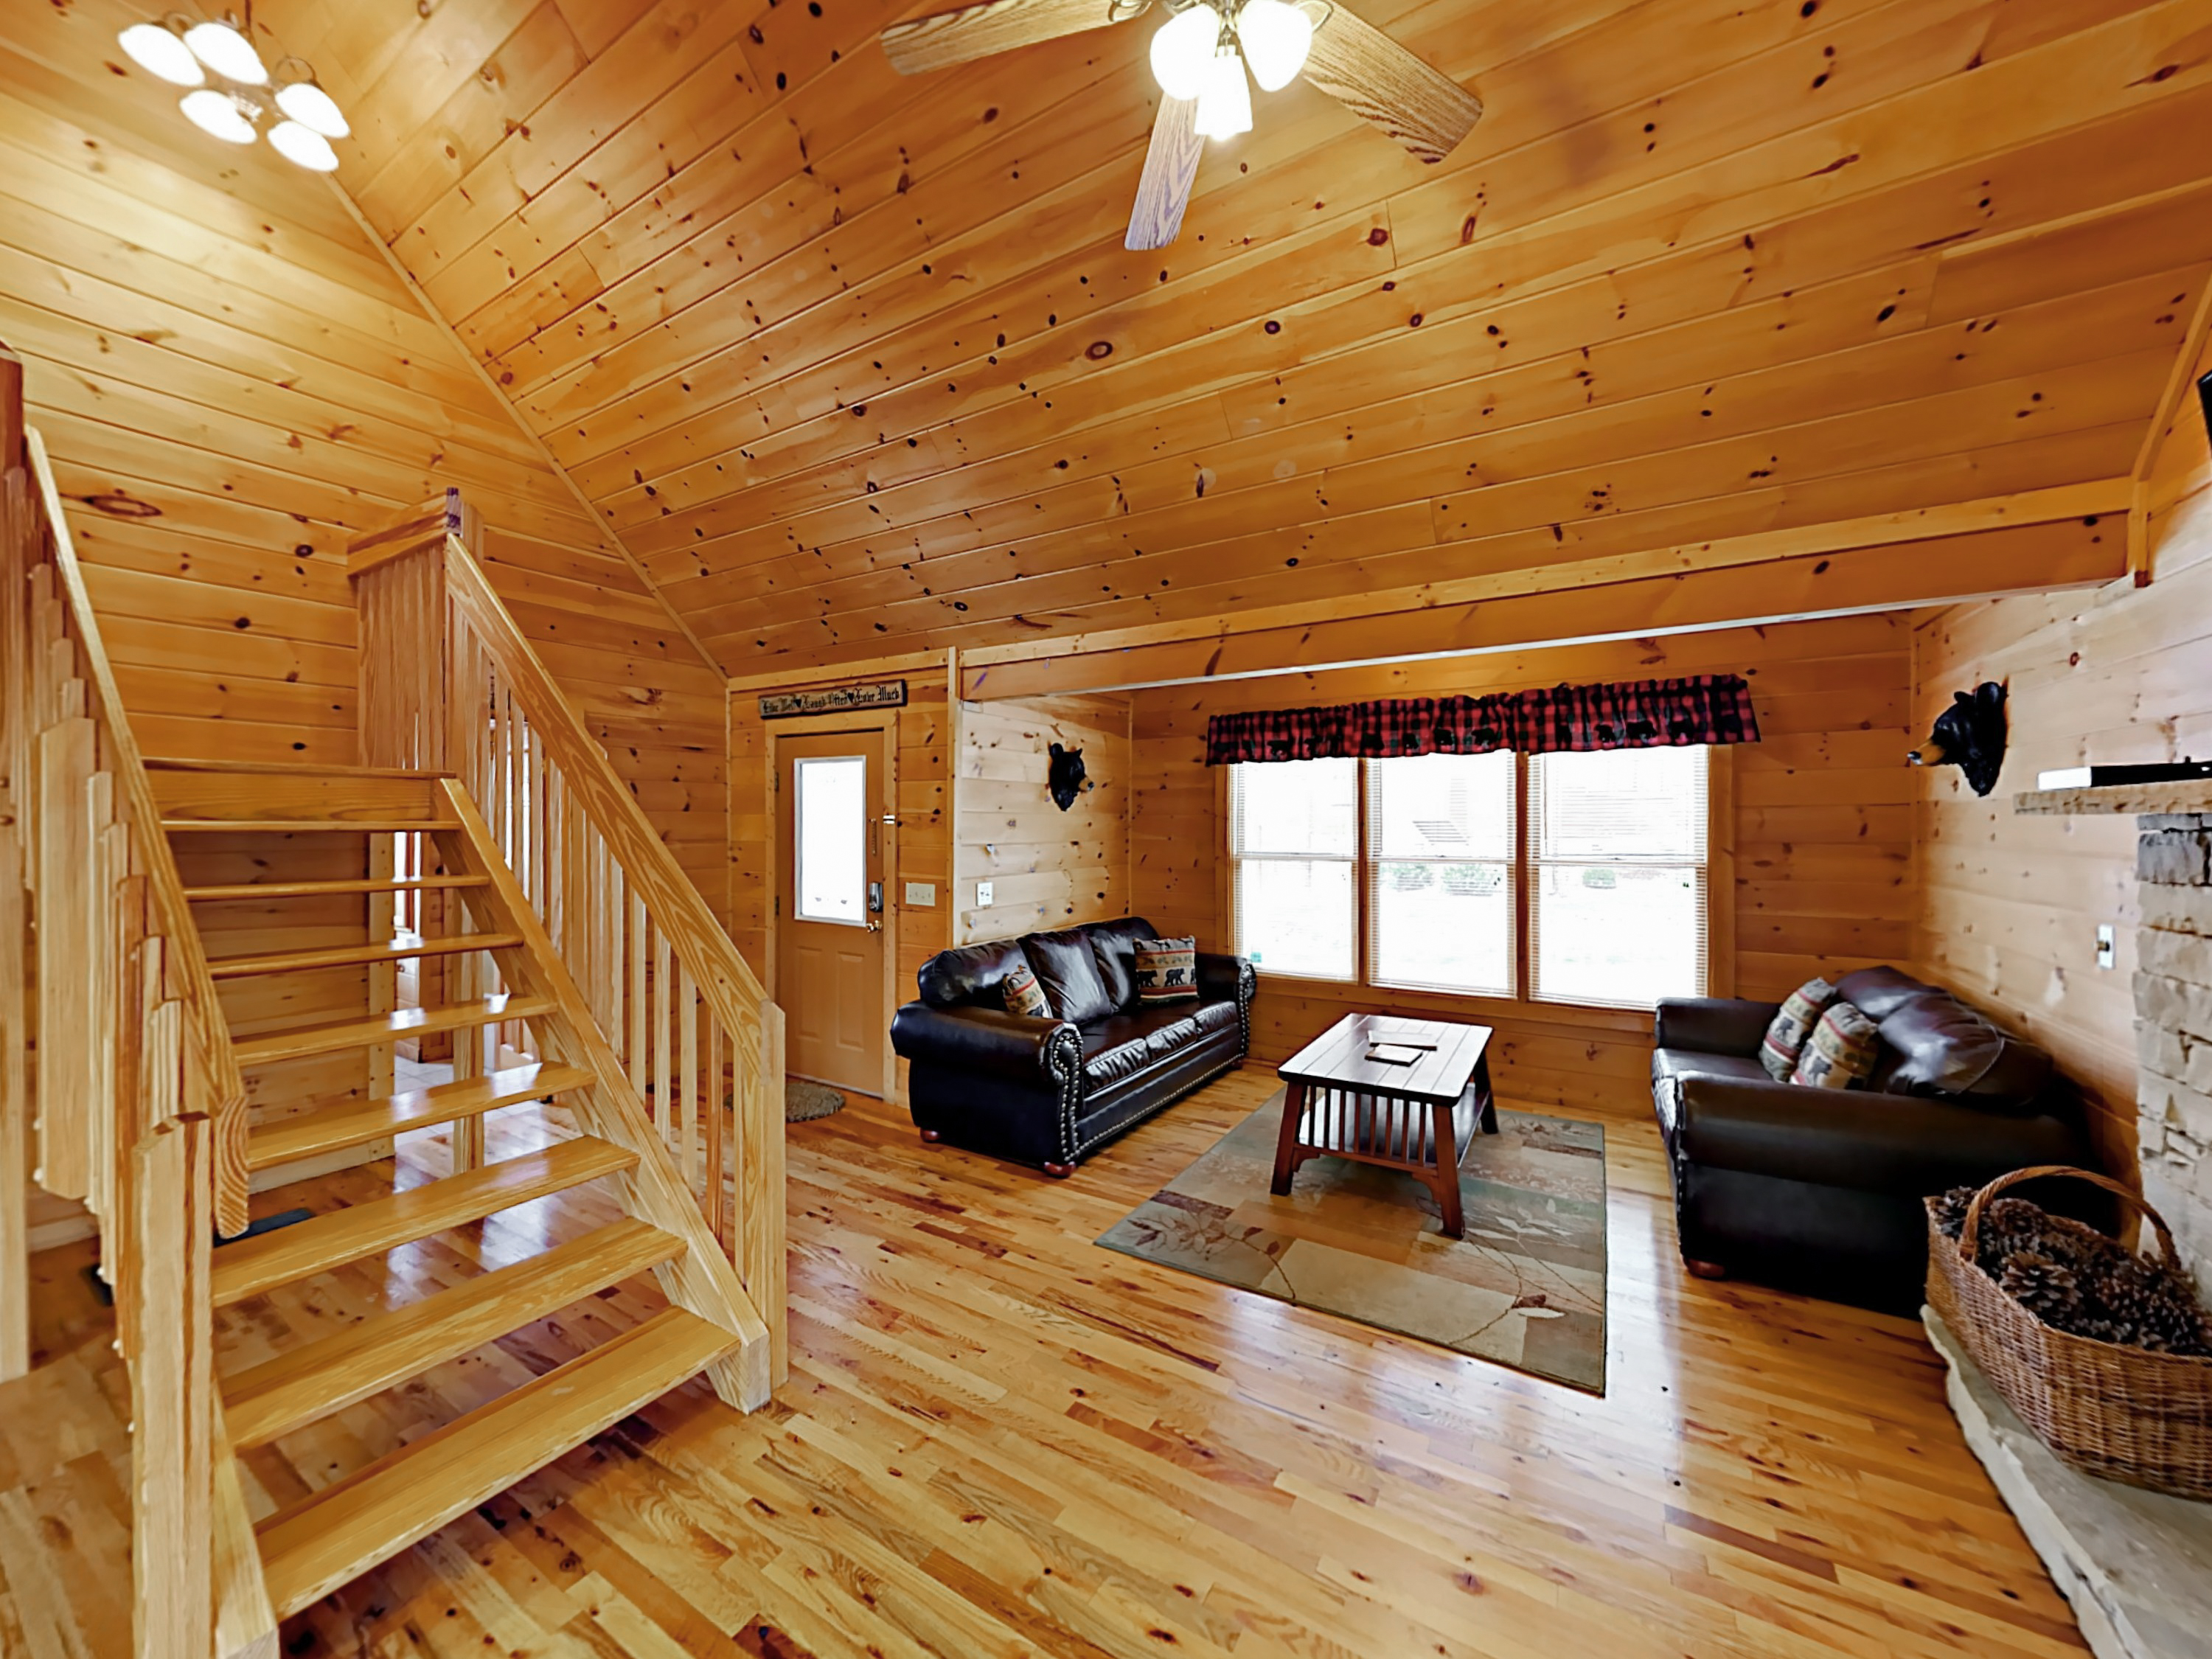 we home is in candies been vacation tn cabins your mahalia located mountain for made have gatlinburg lodge hotel pin and s since rooms downtown aunt sidney james fine available